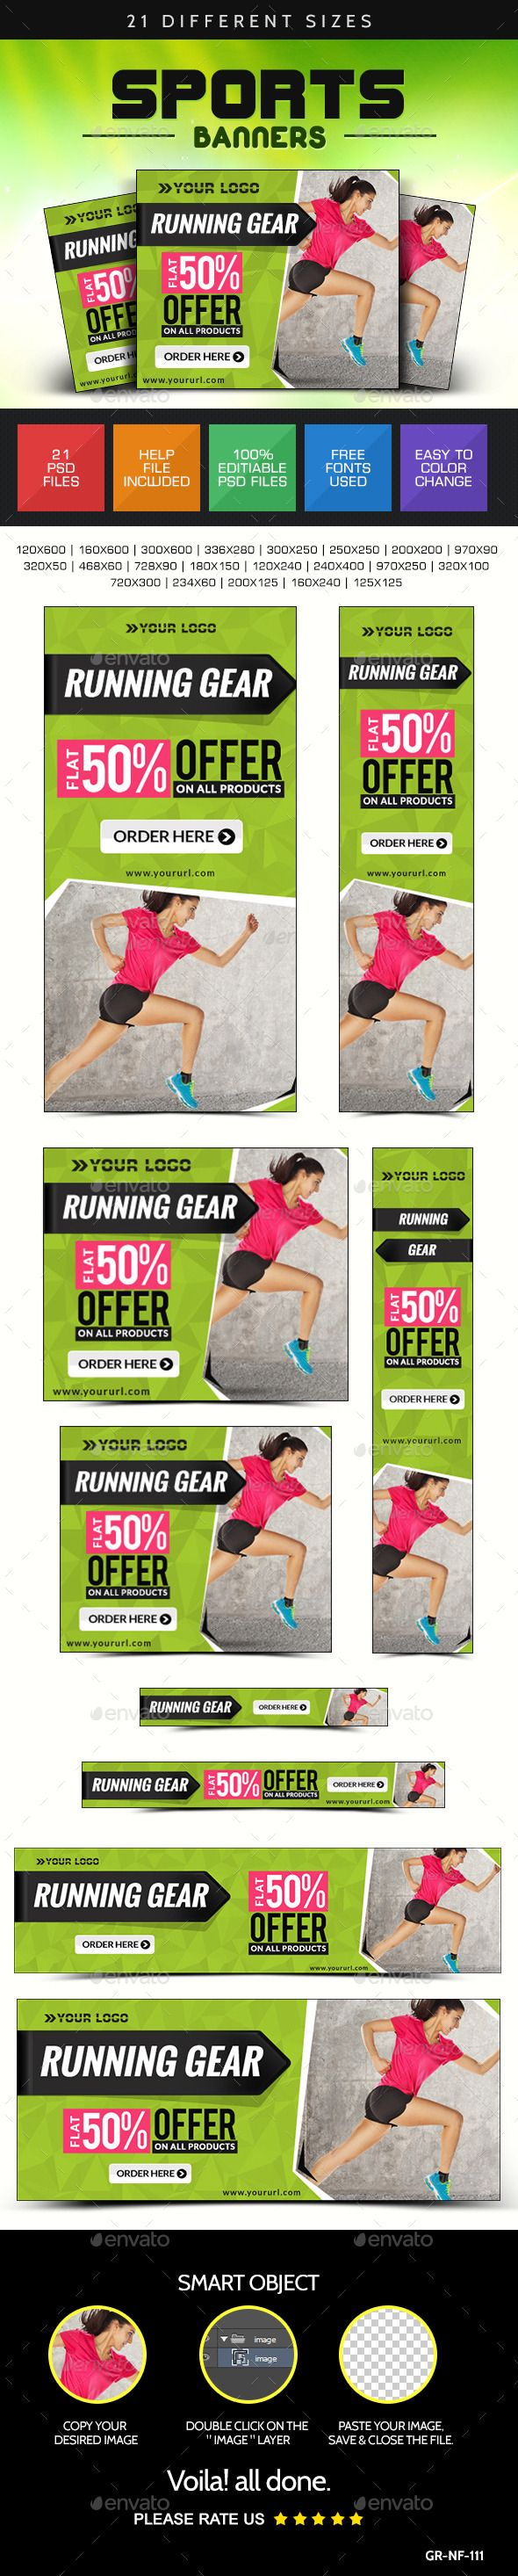 Online Sports Store Web Banners Template PSD | Buy and Download: http://graphicriver.net/item/online-sports-store-web-banners/8961042?WT.ac=category_thumb&WT.z_author=doto&ref=ksioks